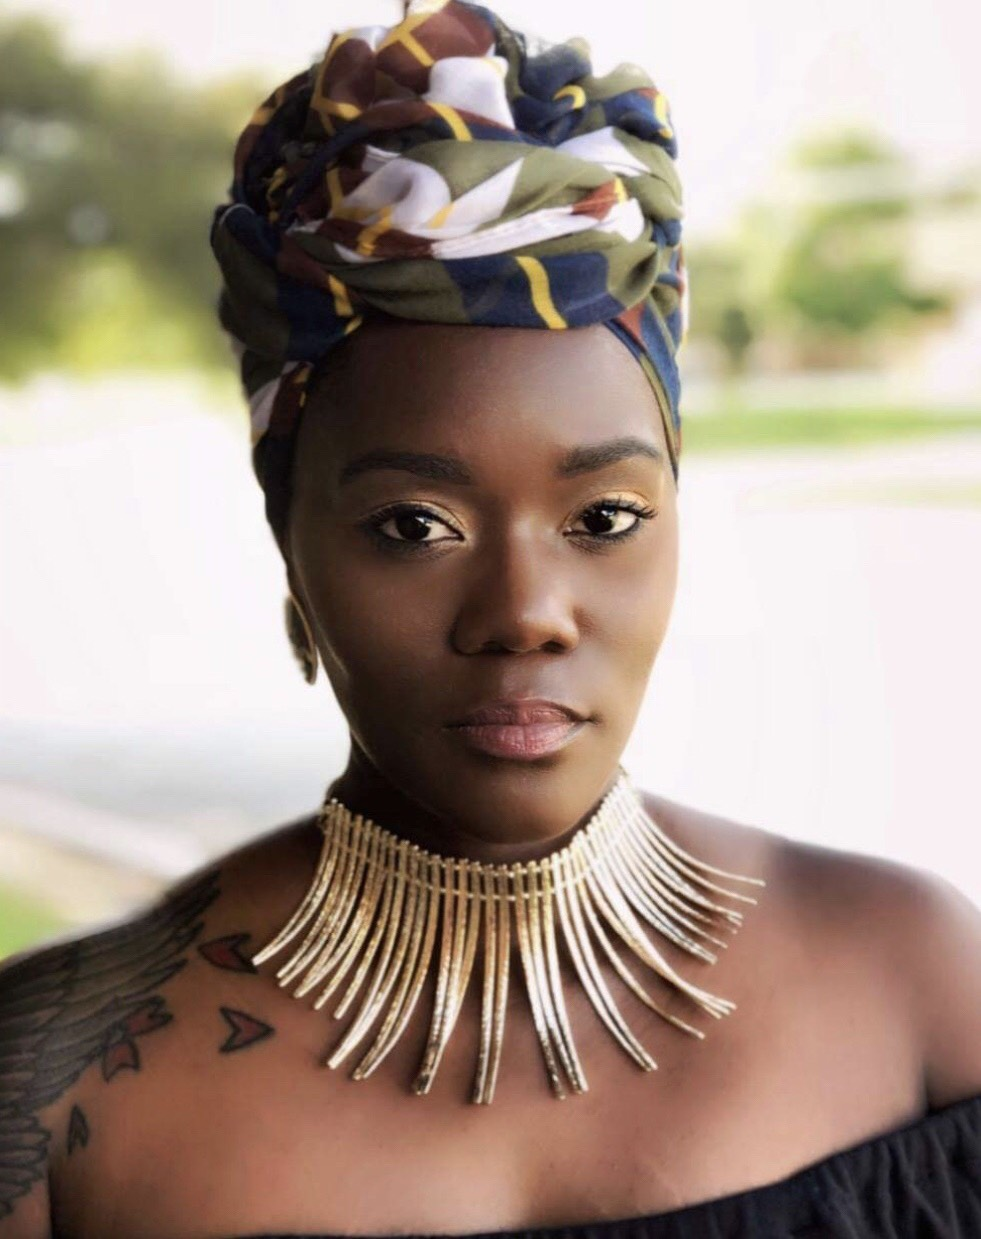 About - Elle Davis is a national spoken word artist, model, and founder of Dark Girl Fly.